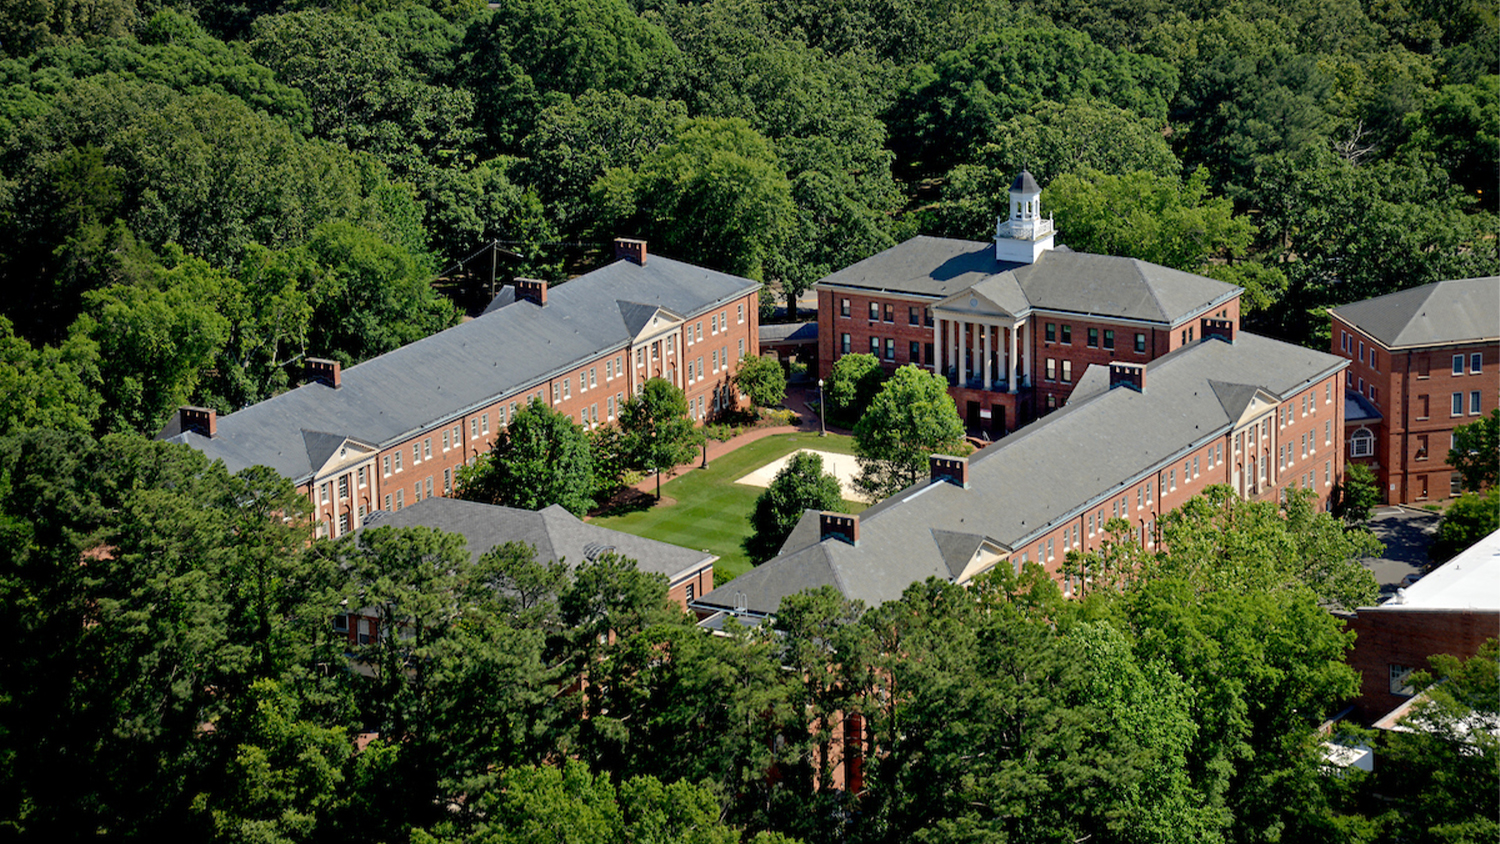 An aerial view of residence halls on campus